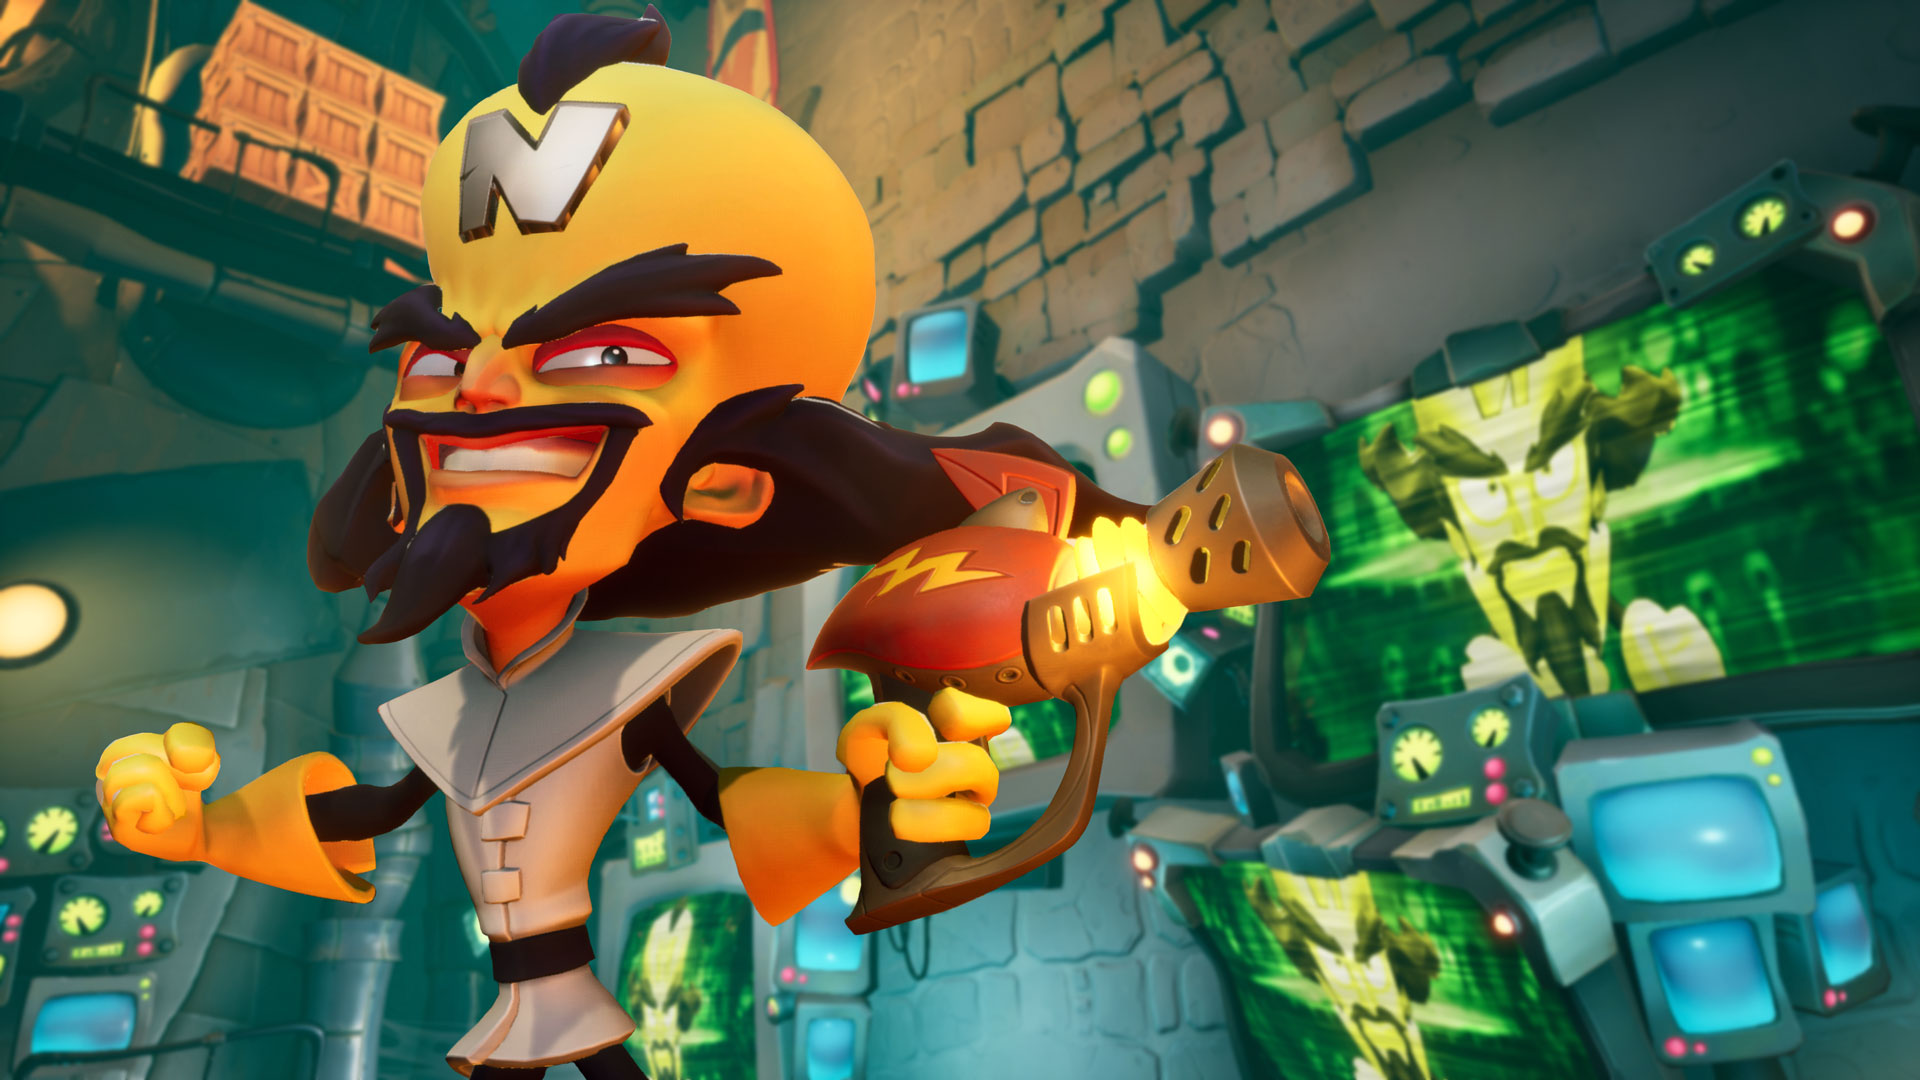 Just N.Time for Fall – Crash Bandicoot™ 4: It's About Time - Image 5